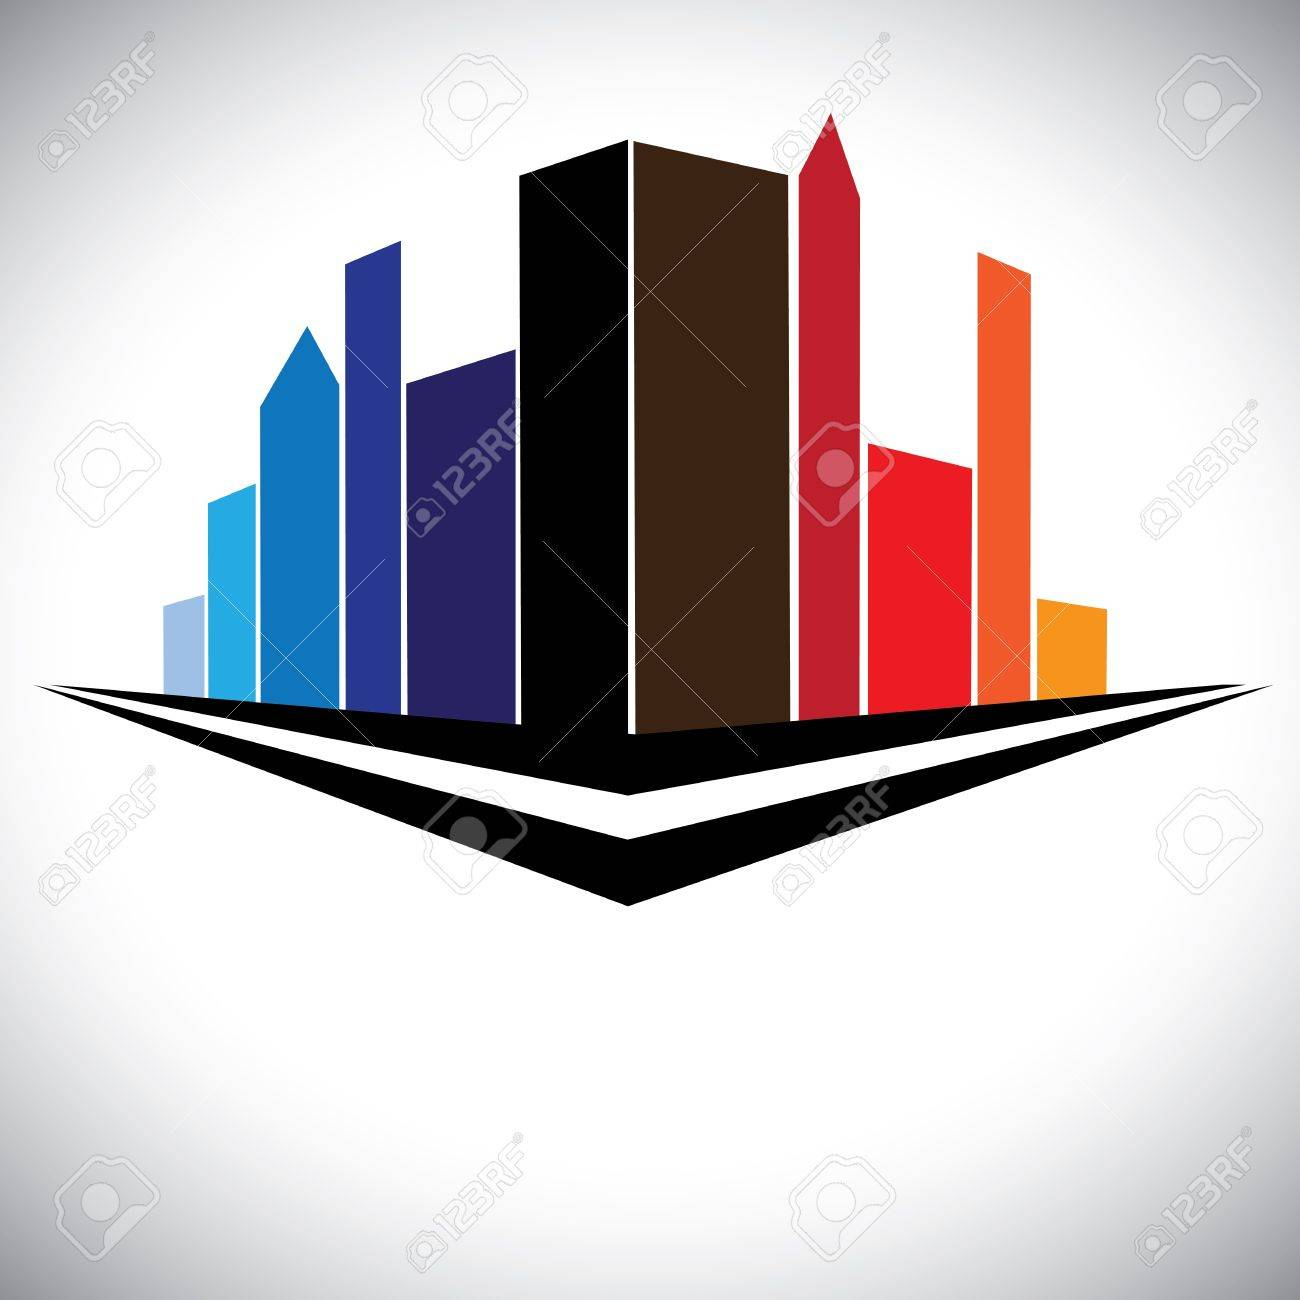 colorful buildings of cityscape urban setting with tall skyscrapers, towers and street in red, orange, brown, blue and purple colors Stock Vector - 17040870